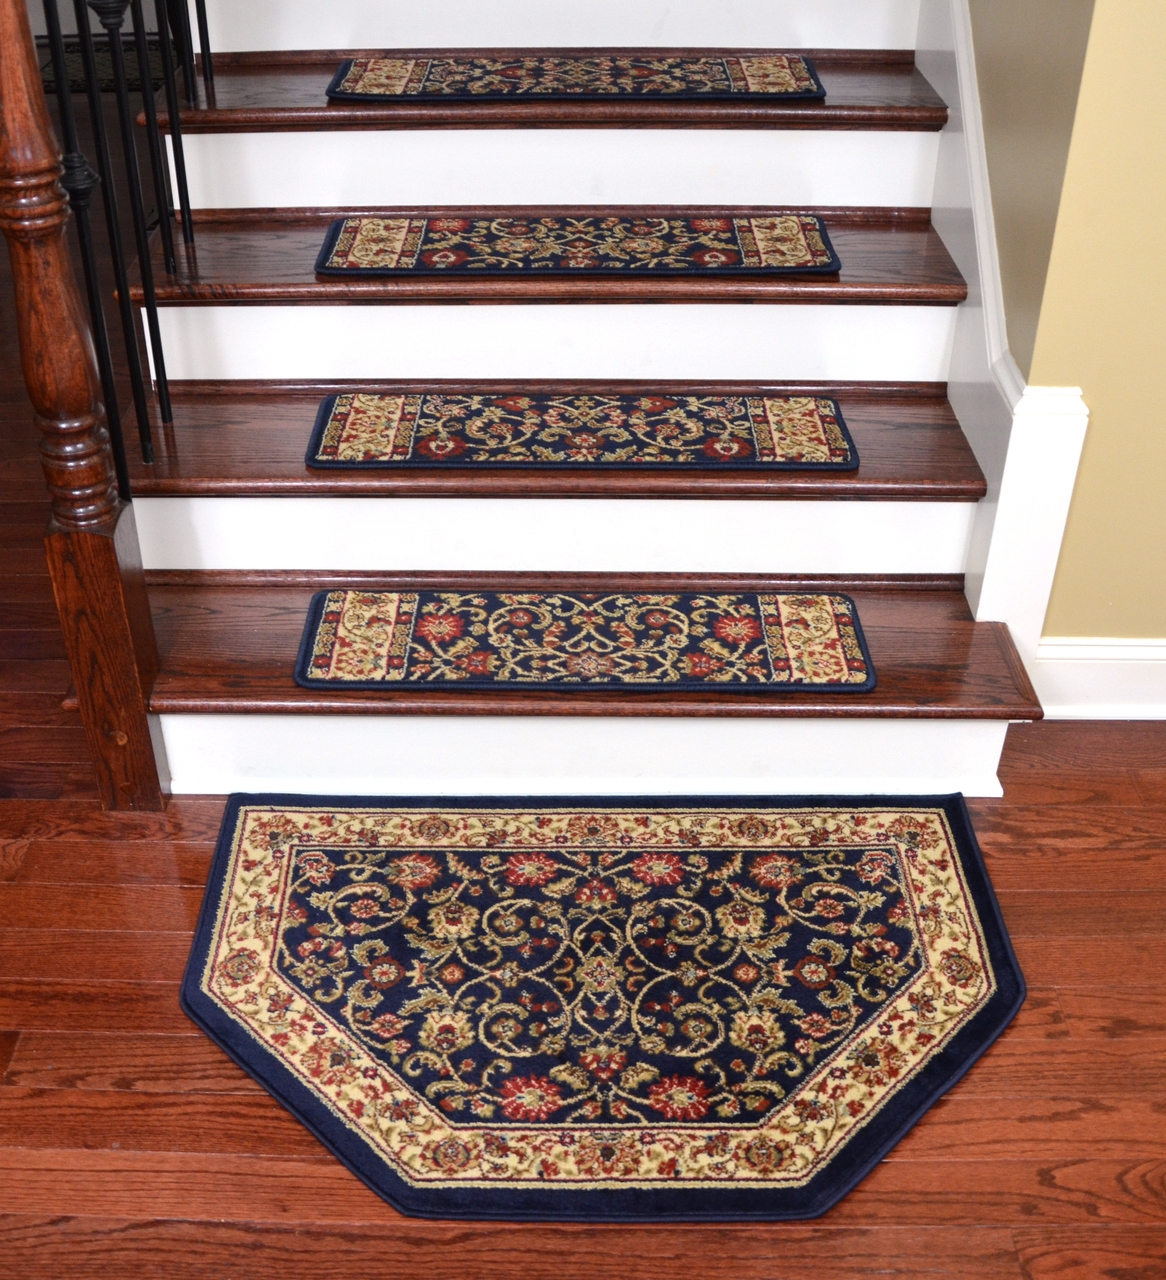 Flooring Pretty Stair Treads Carpet For Stair Decoration Idea Intended For Stair Tread Rugs For Carpet (Image 6 of 15)